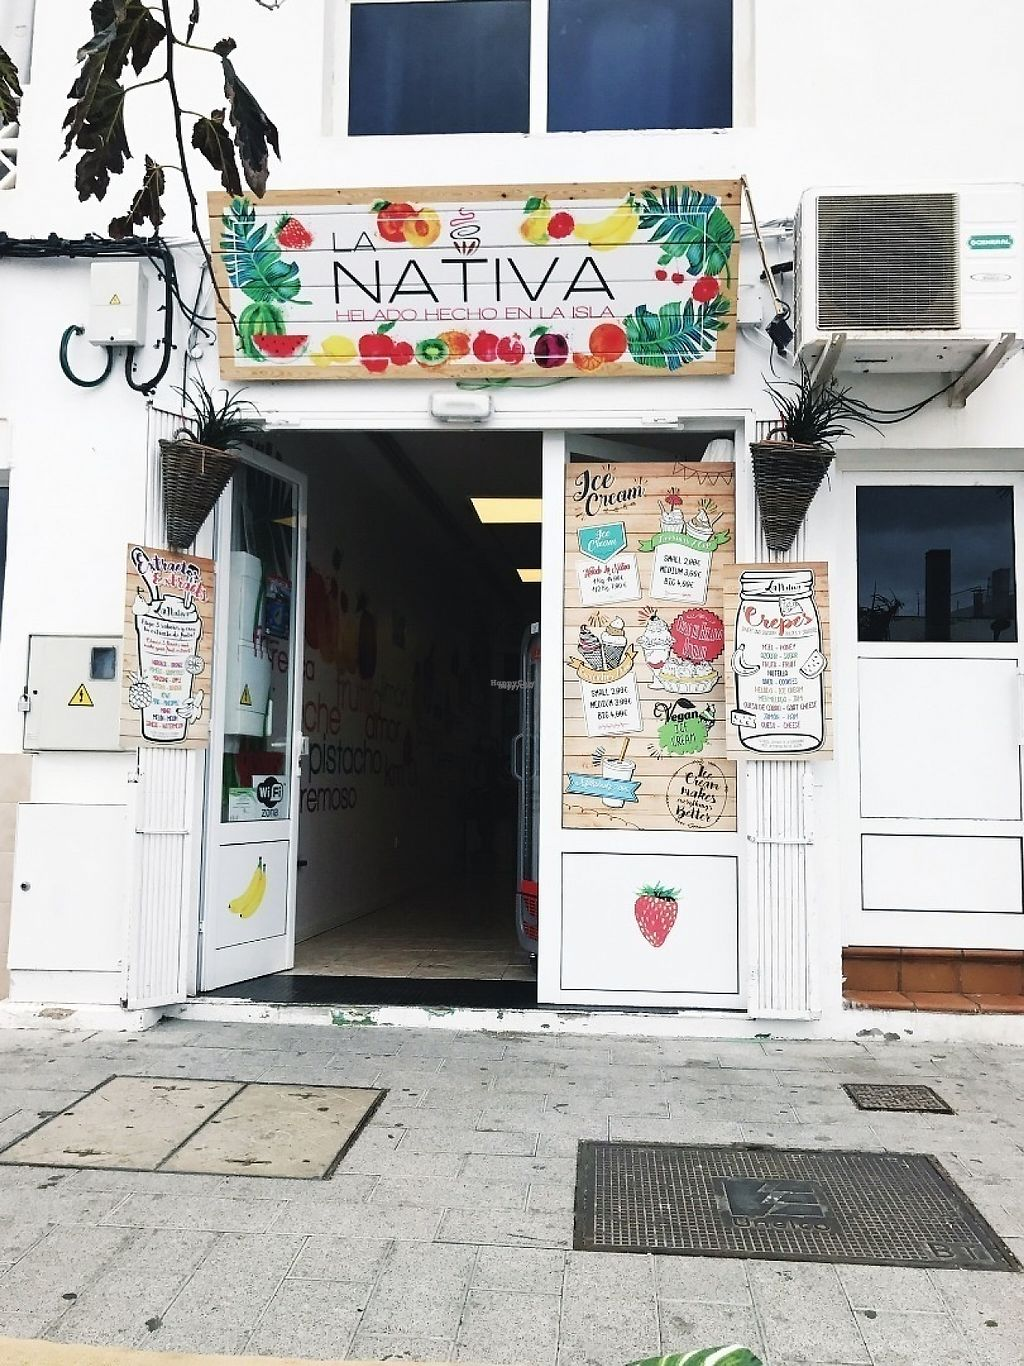 "Photo of Heladeria La Nativa  by <a href=""/members/profile/IsabelSalo"">IsabelSalo</a> <br/>Front <br/> April 26, 2017  - <a href='/contact/abuse/image/76790/252704'>Report</a>"